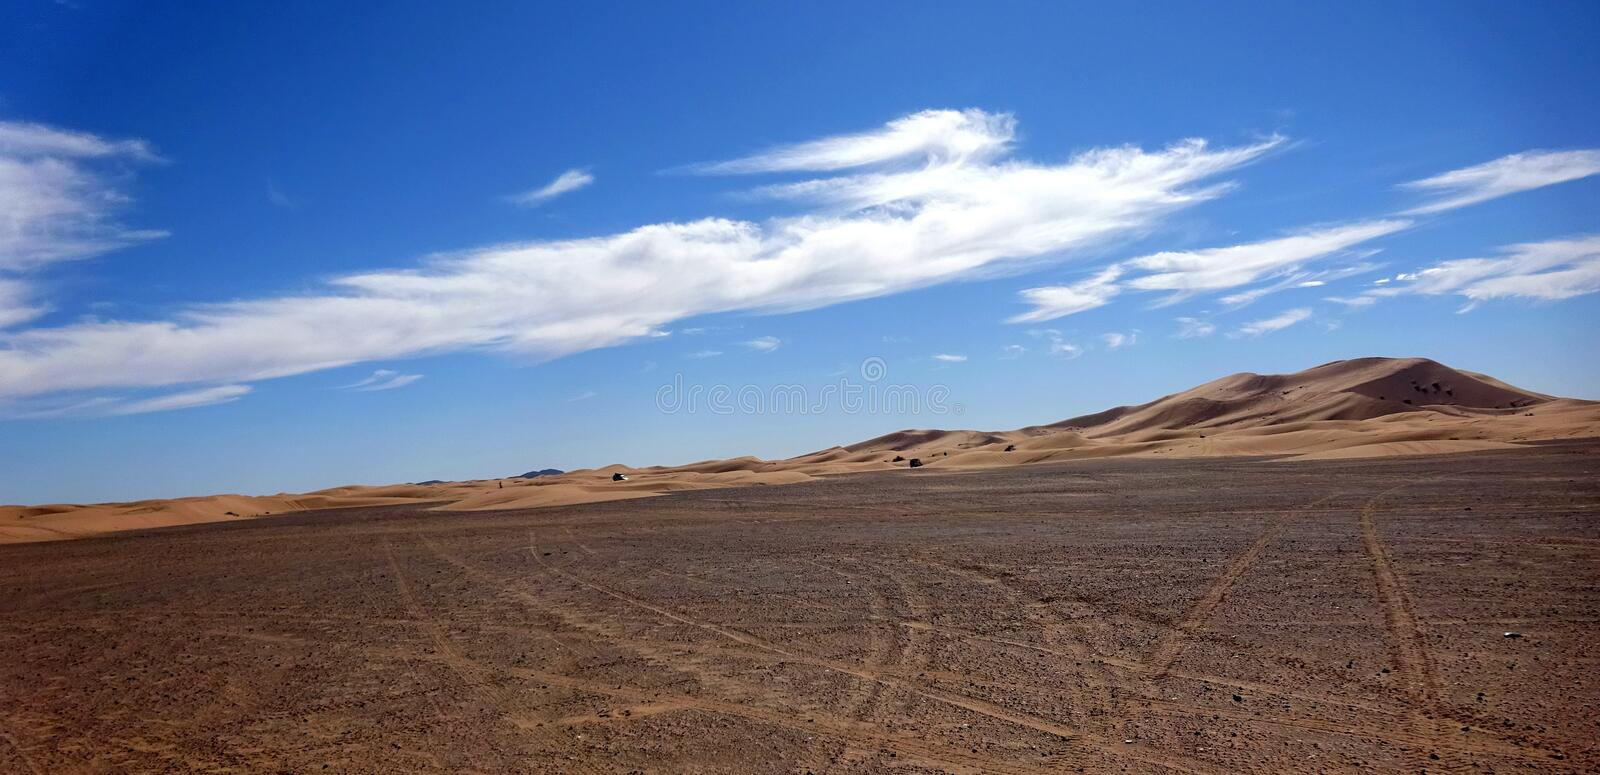 Stony desert Sahara. The Sahara is the largest hot desert and the third largest desert in the world after Antarctica and the Arctic. Its area of 9,200,000 square stock photography